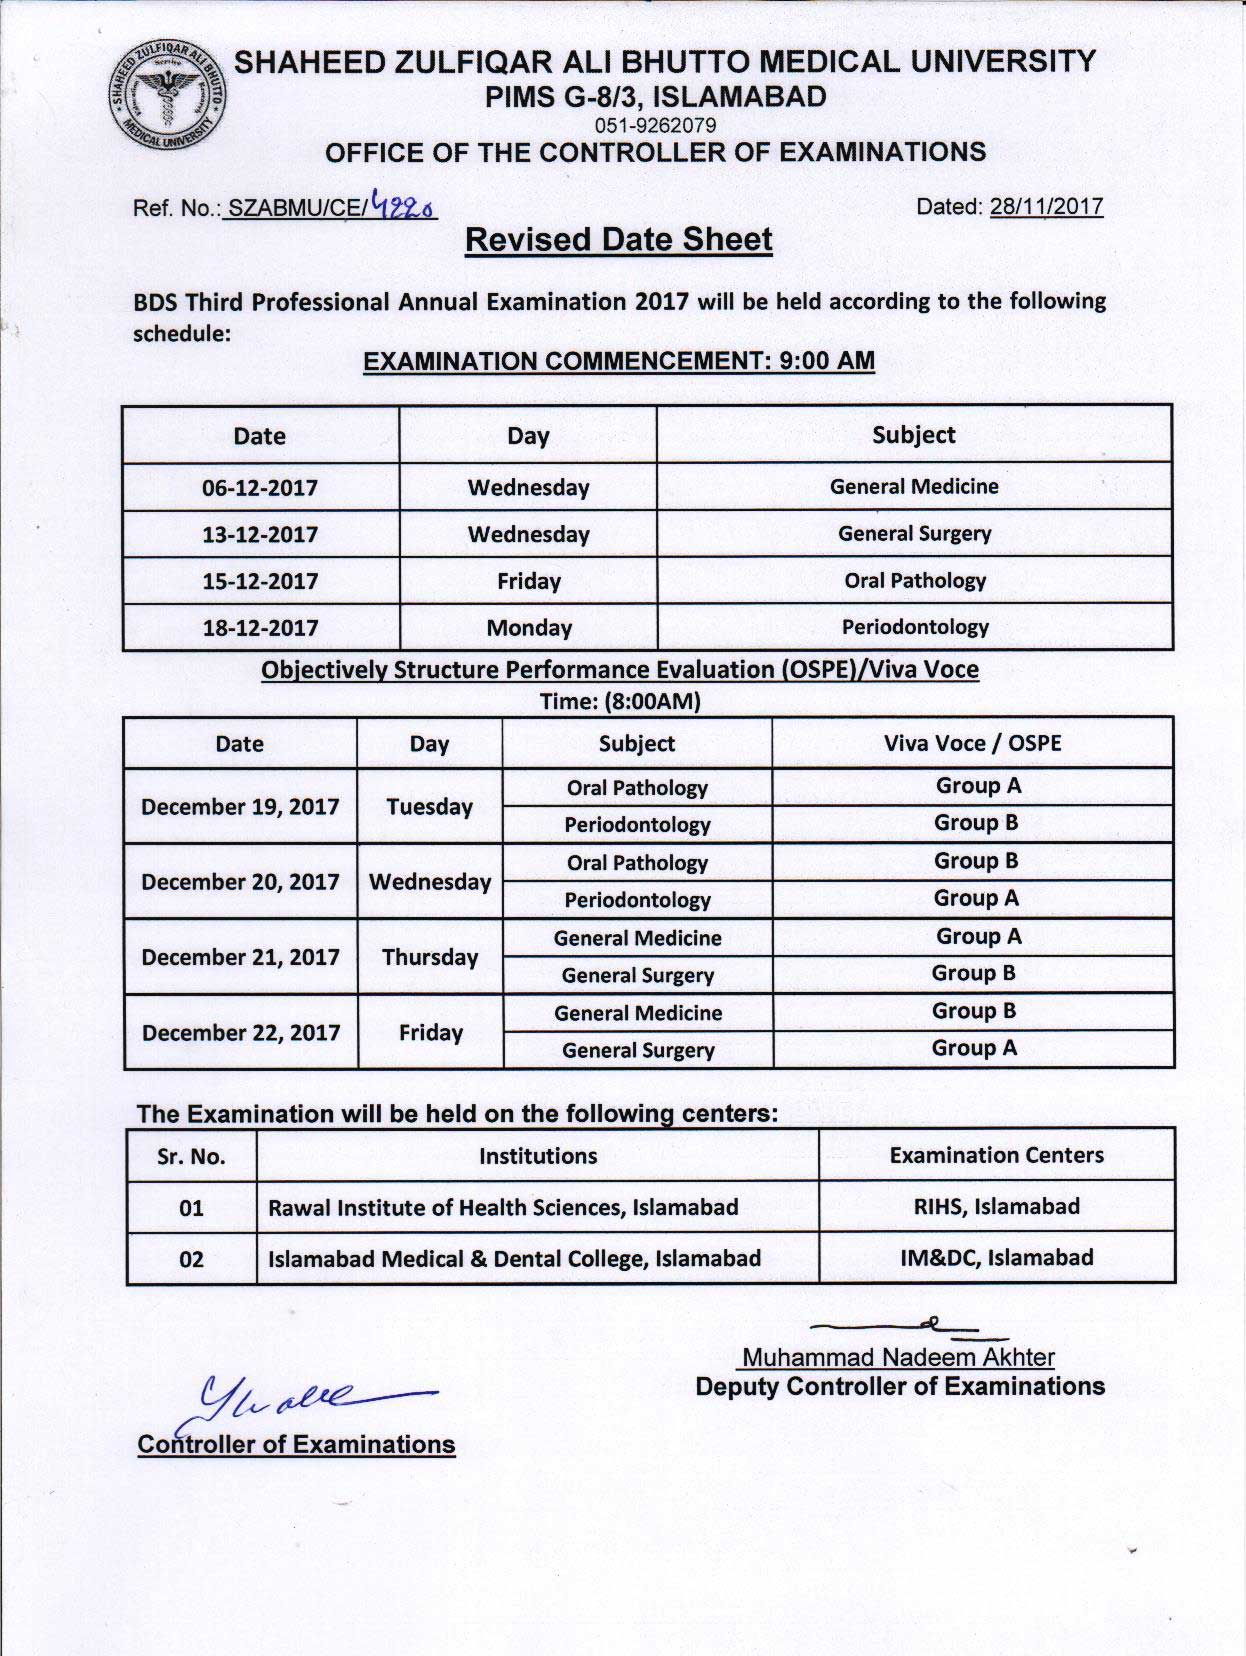 Revised Date Sheet - BDS All professional Viva Voce Examinations